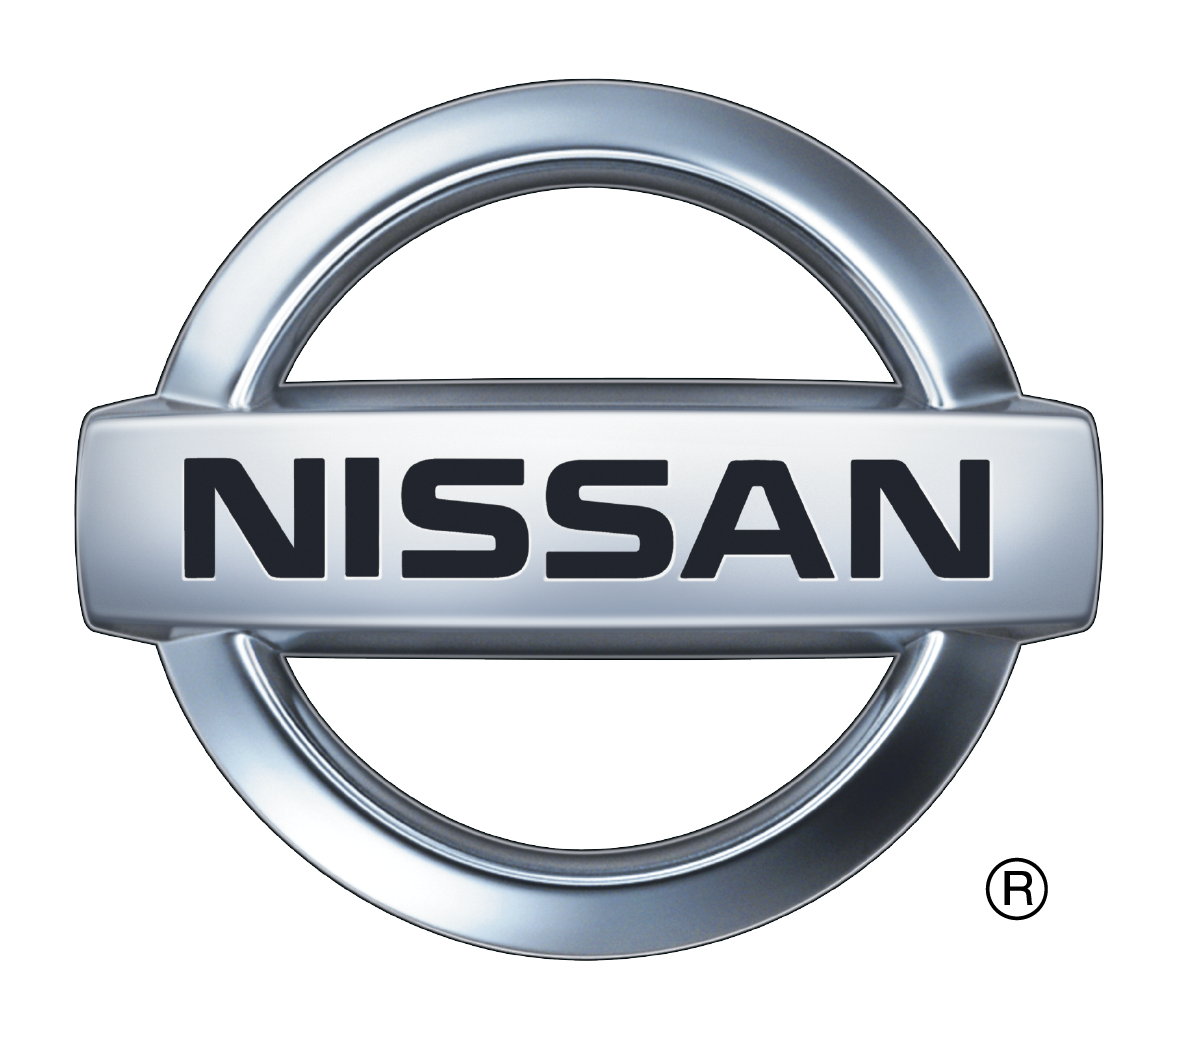 nissan_badge_300dpi